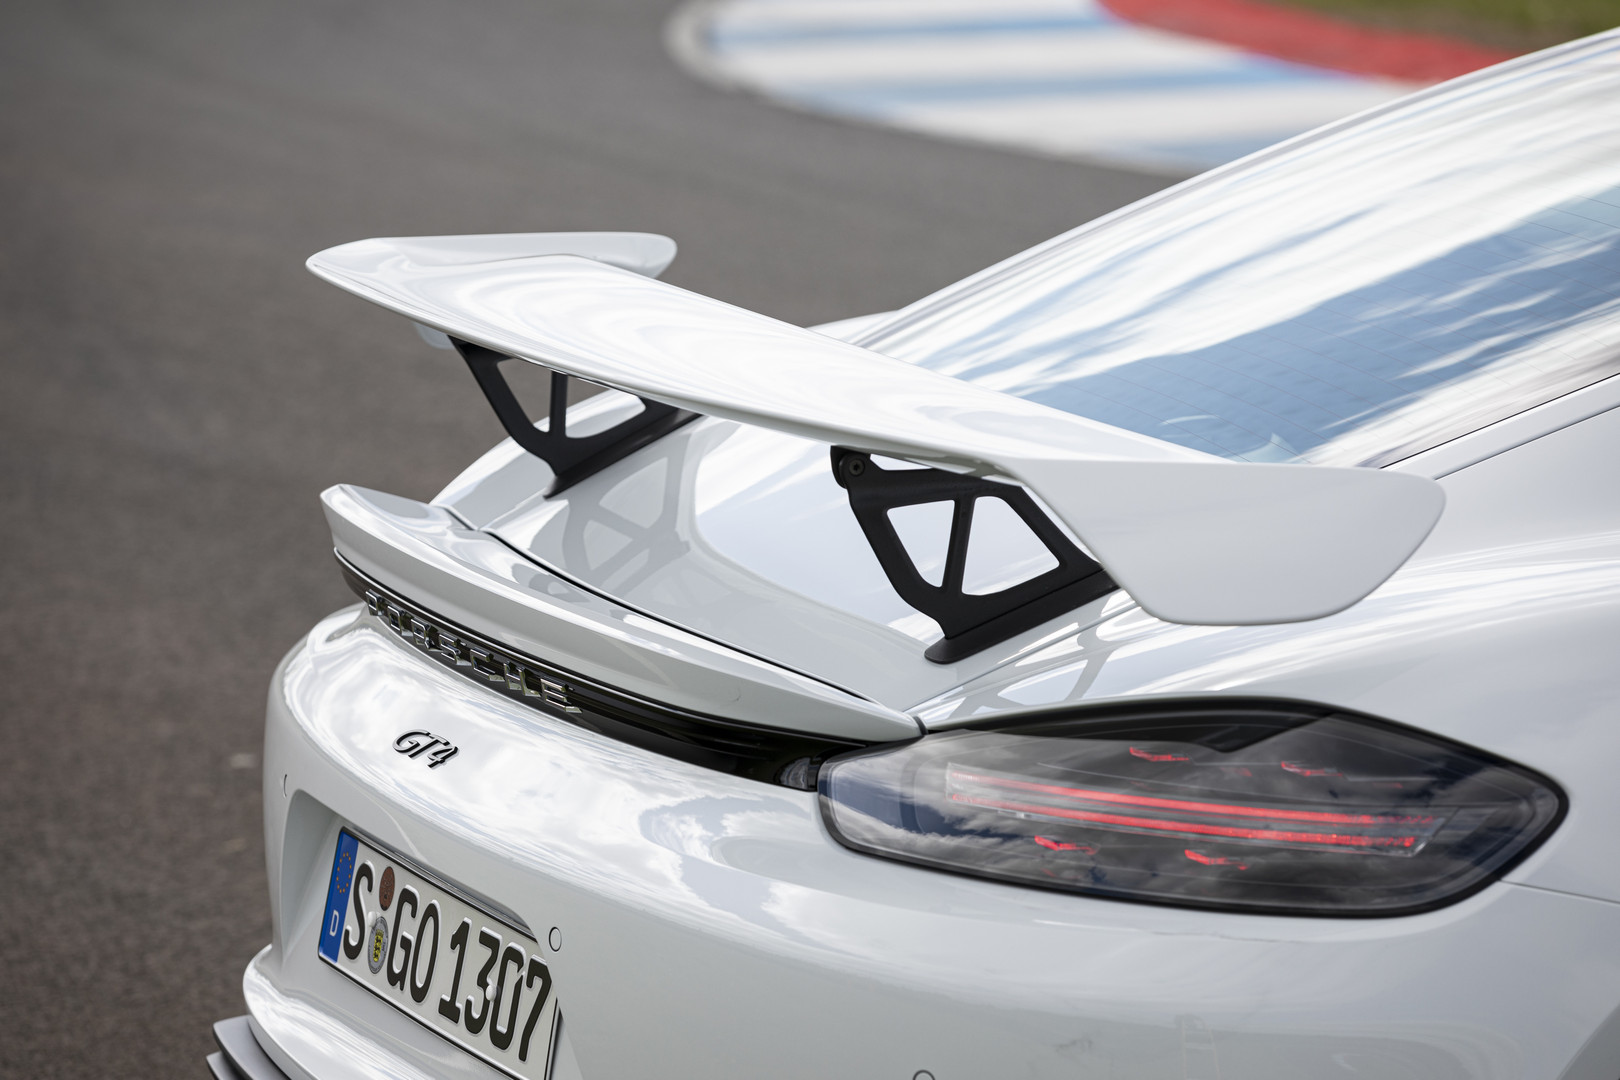 Porsche Cayman GT4 Rear Wing